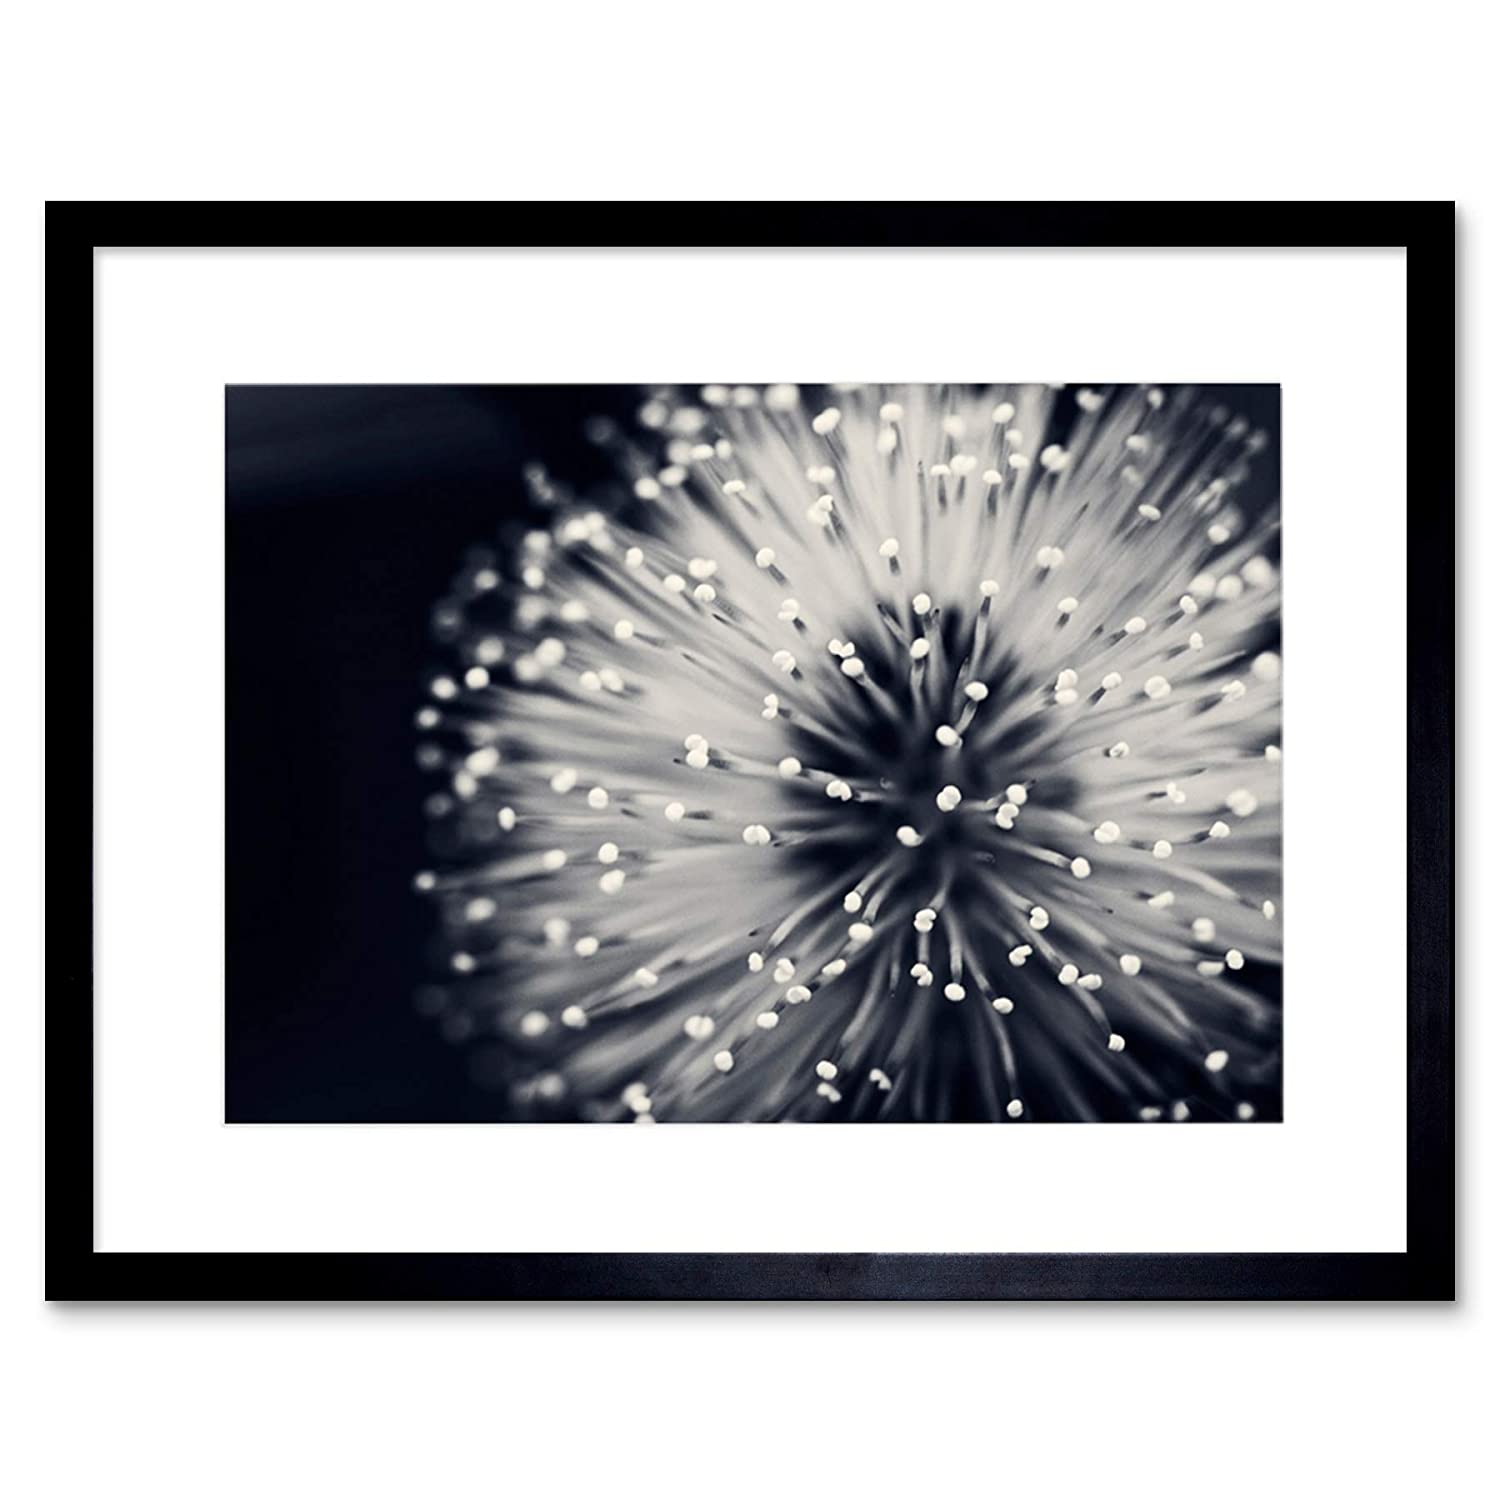 Amazon com the art stop photo nature plant flower black white beautiful home framed print f12x4247 posters prints